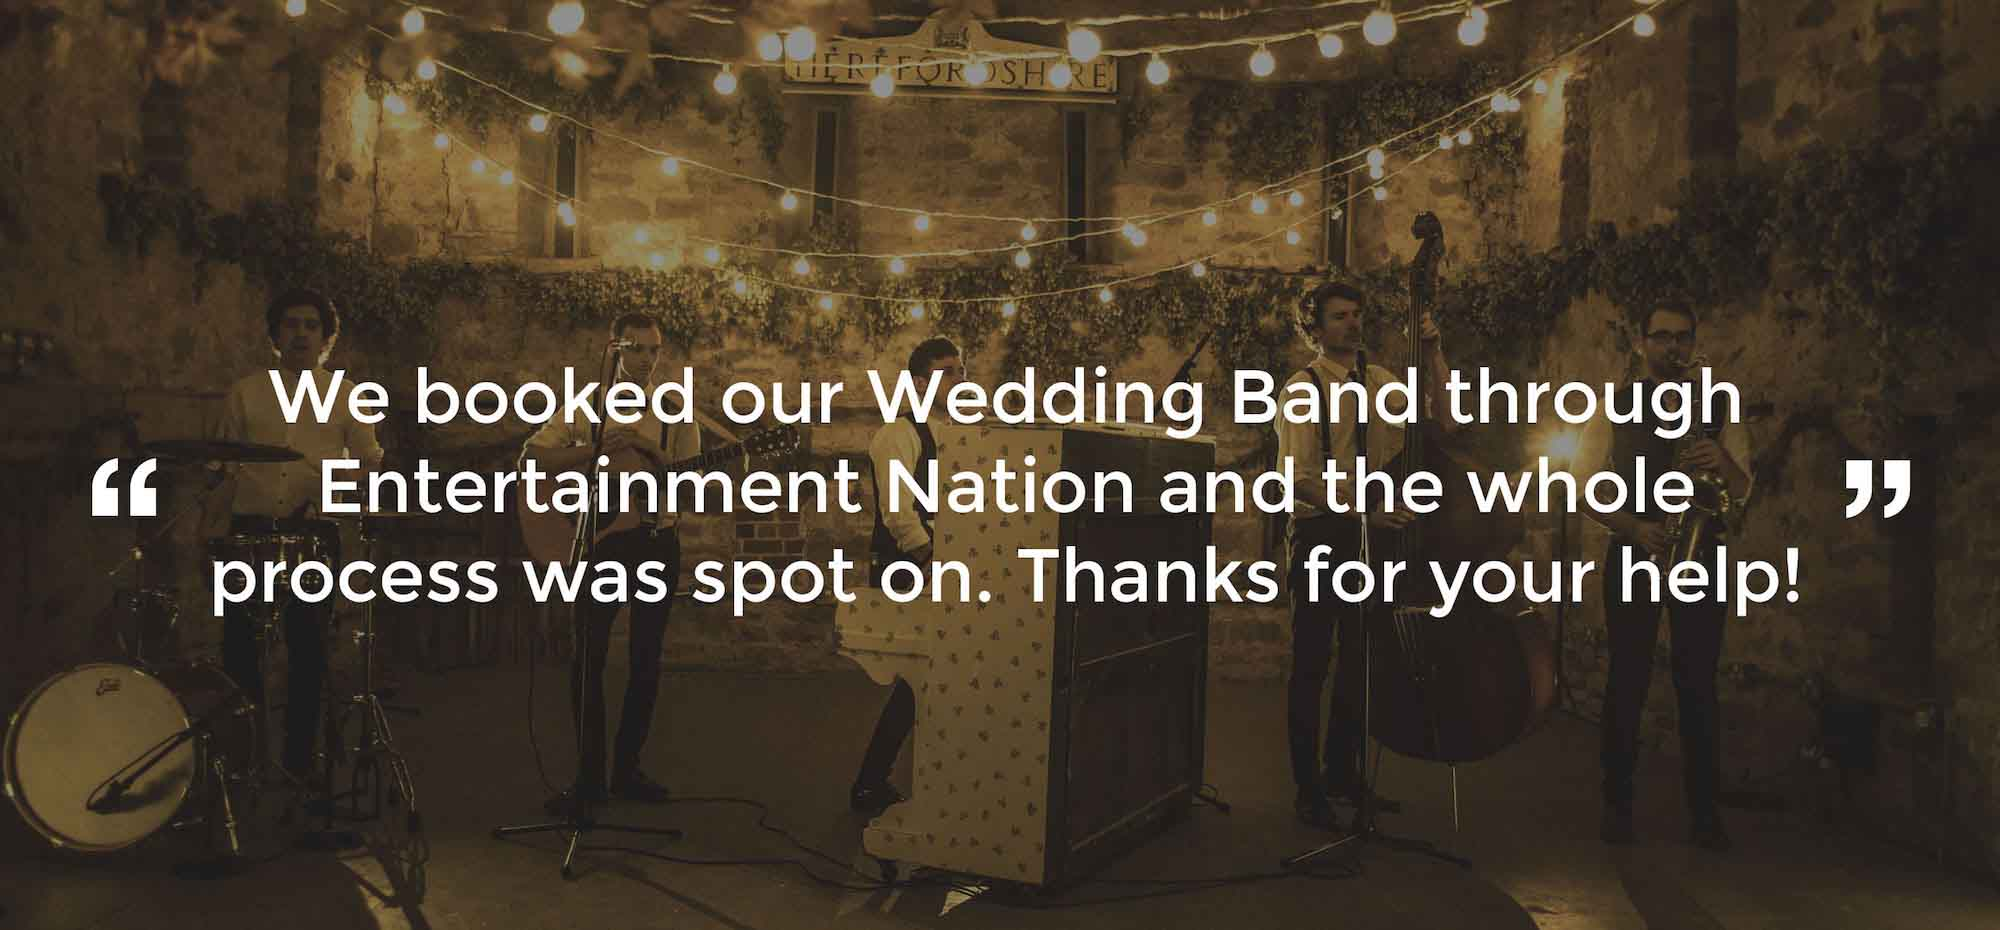 Client Review Of A Wedding Band Central Scotland